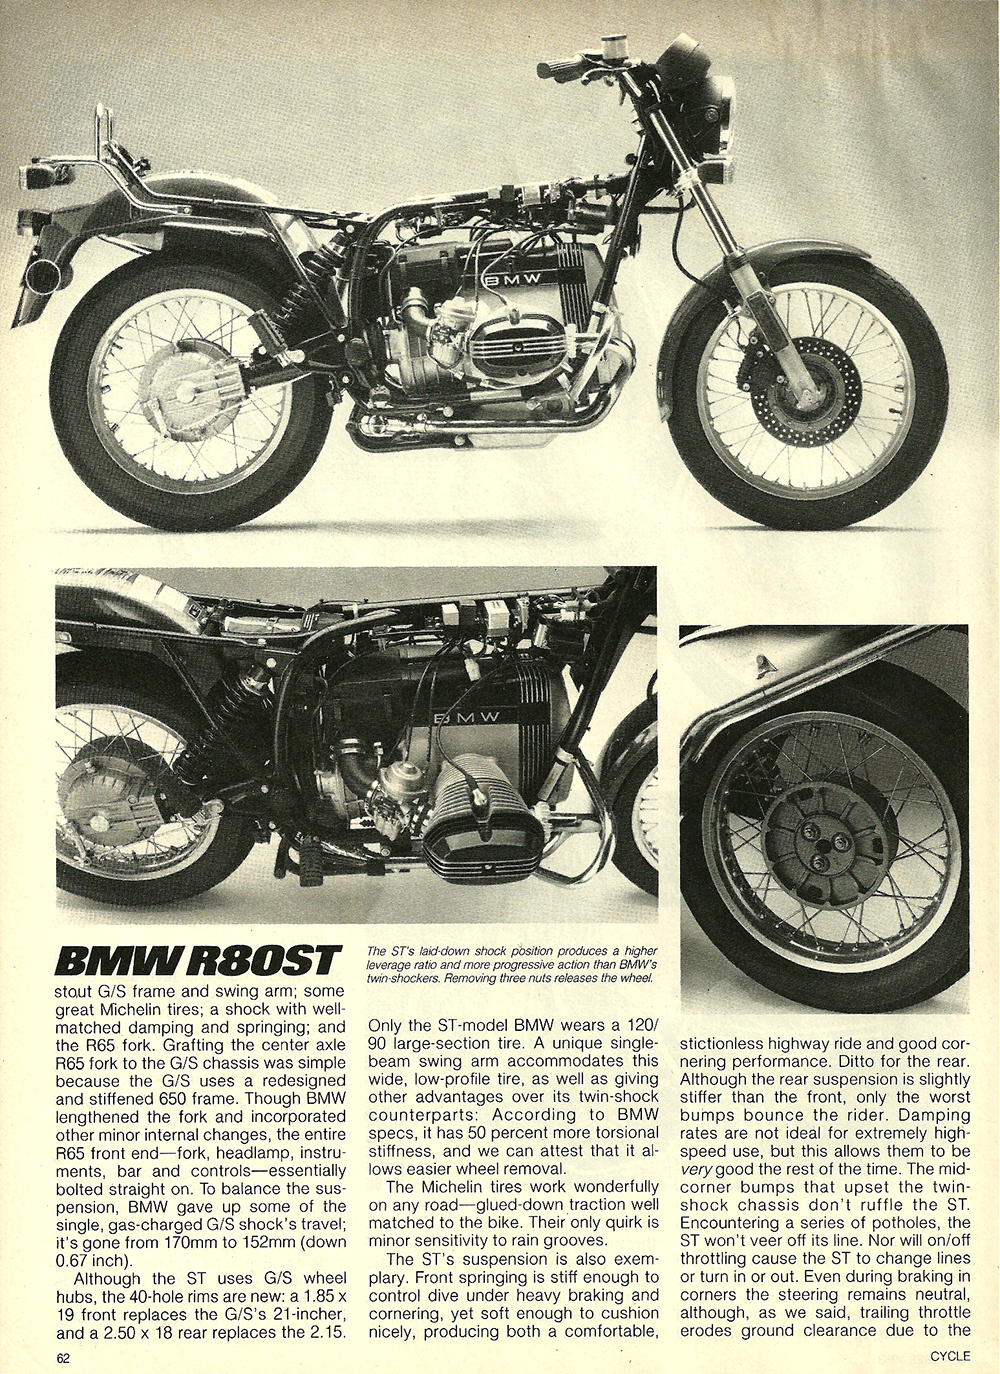 1983 BMW R80ST road test 4.jpg